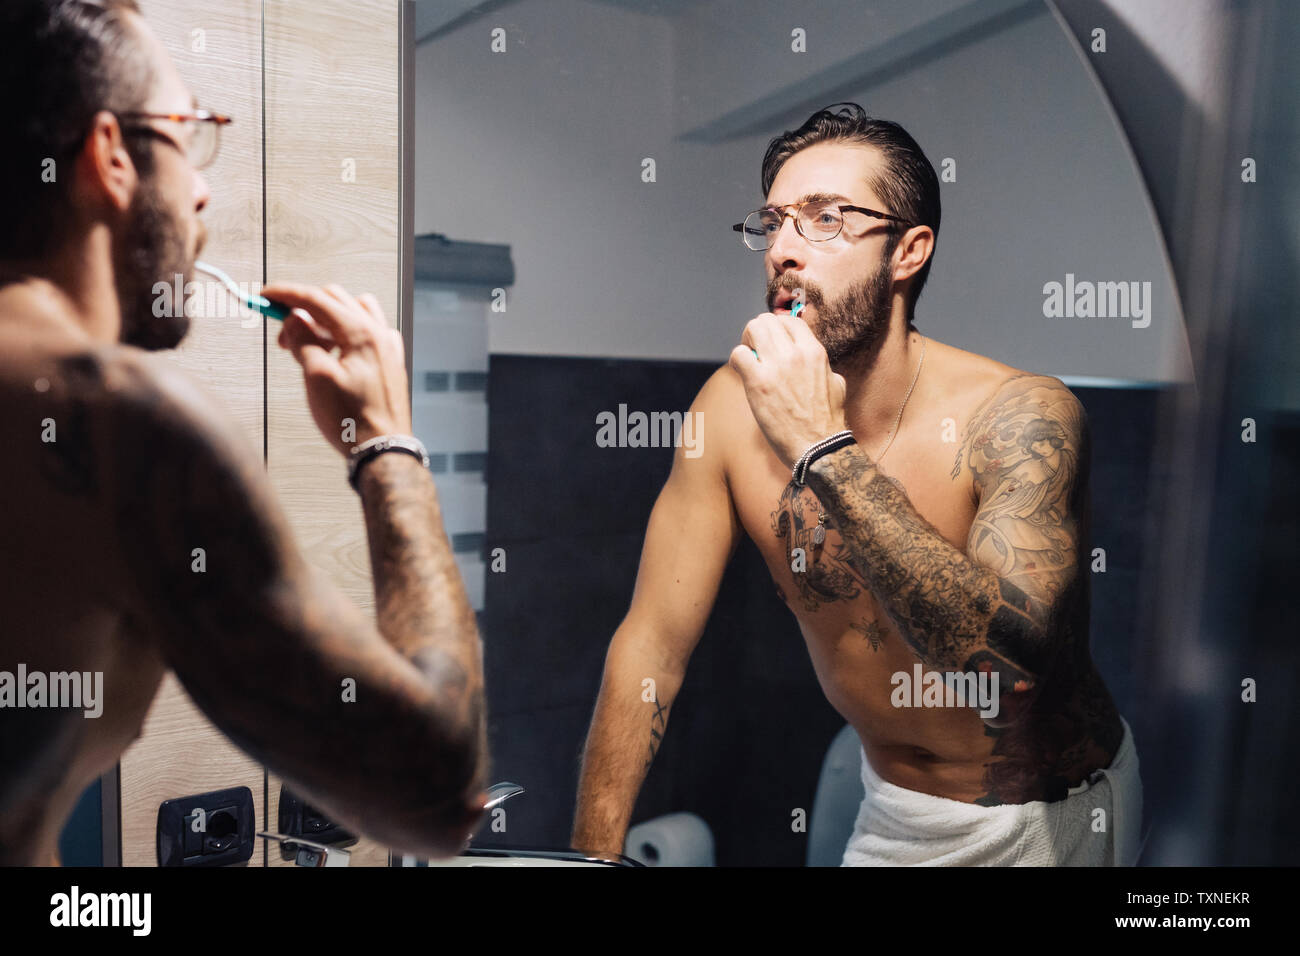 Mid adult man with tattoos brushing teeth at bathroom mirror - Stock Image